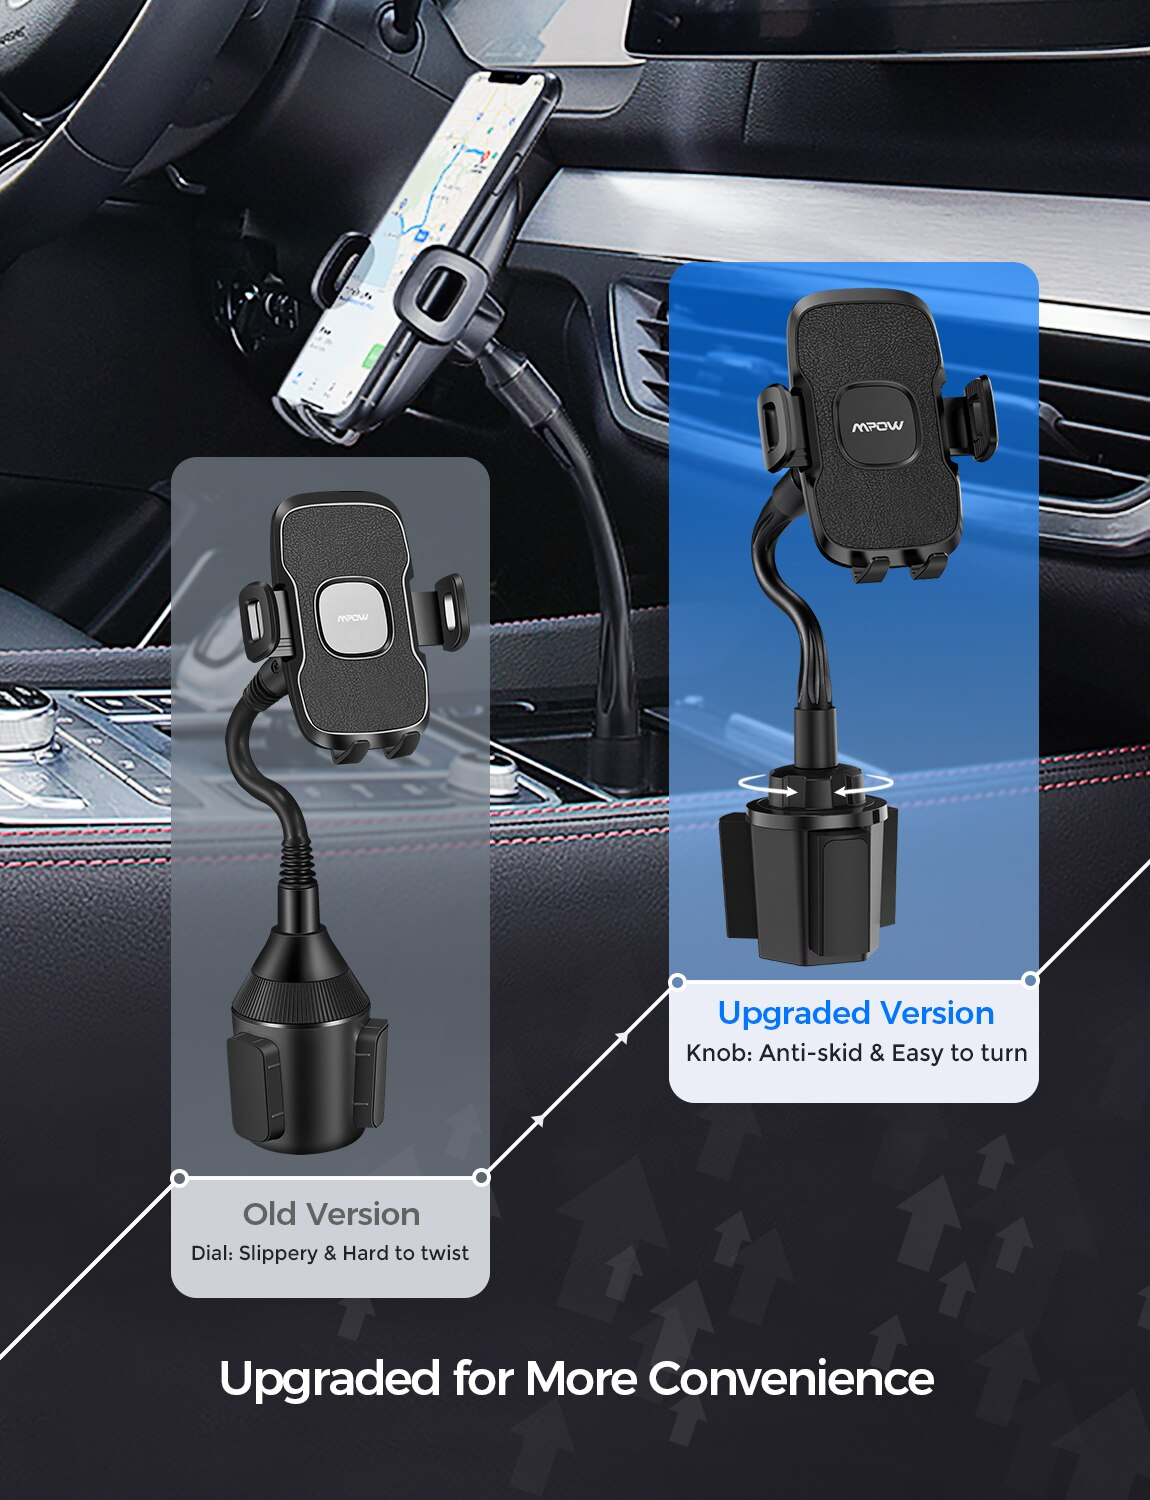 H2a06567767dc44598b82ec1f7ee6c09fM - Mpow CA136 Car Phone Holder 360 Degree Flexible Long Arm and Adjustable Clamp Universal Phone Cradle Mount for For iPhone 12 XS